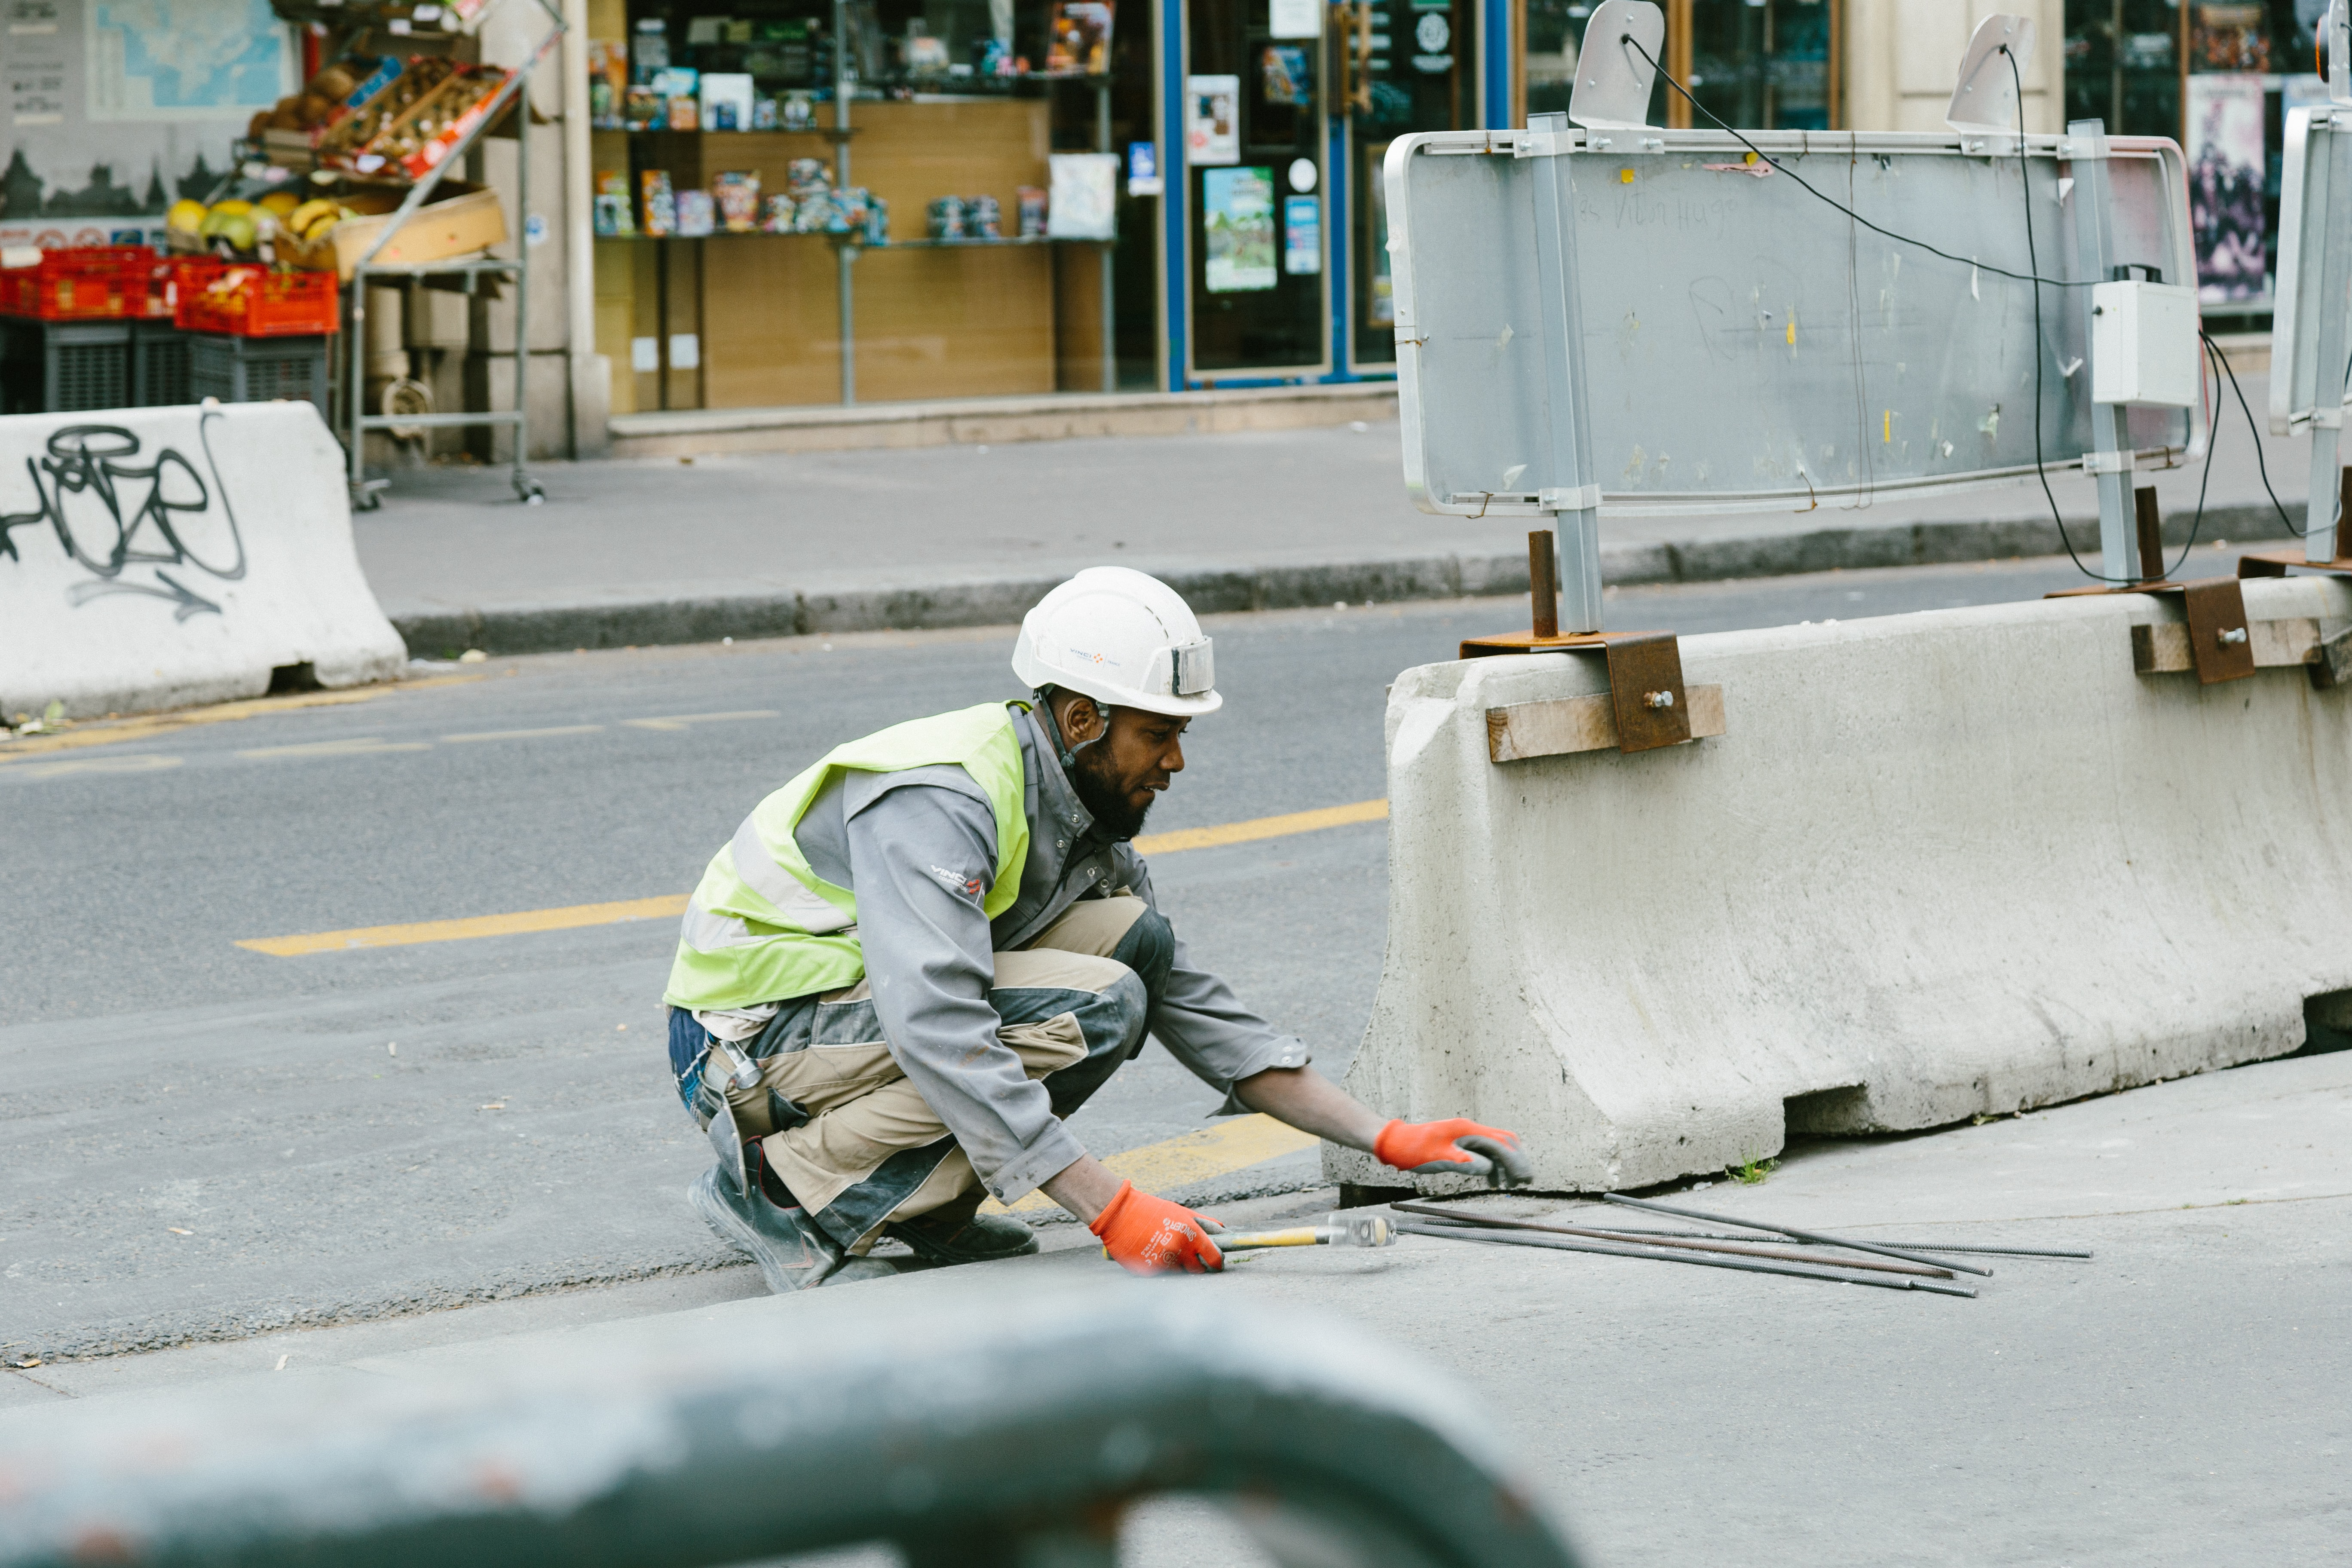 A city worker.